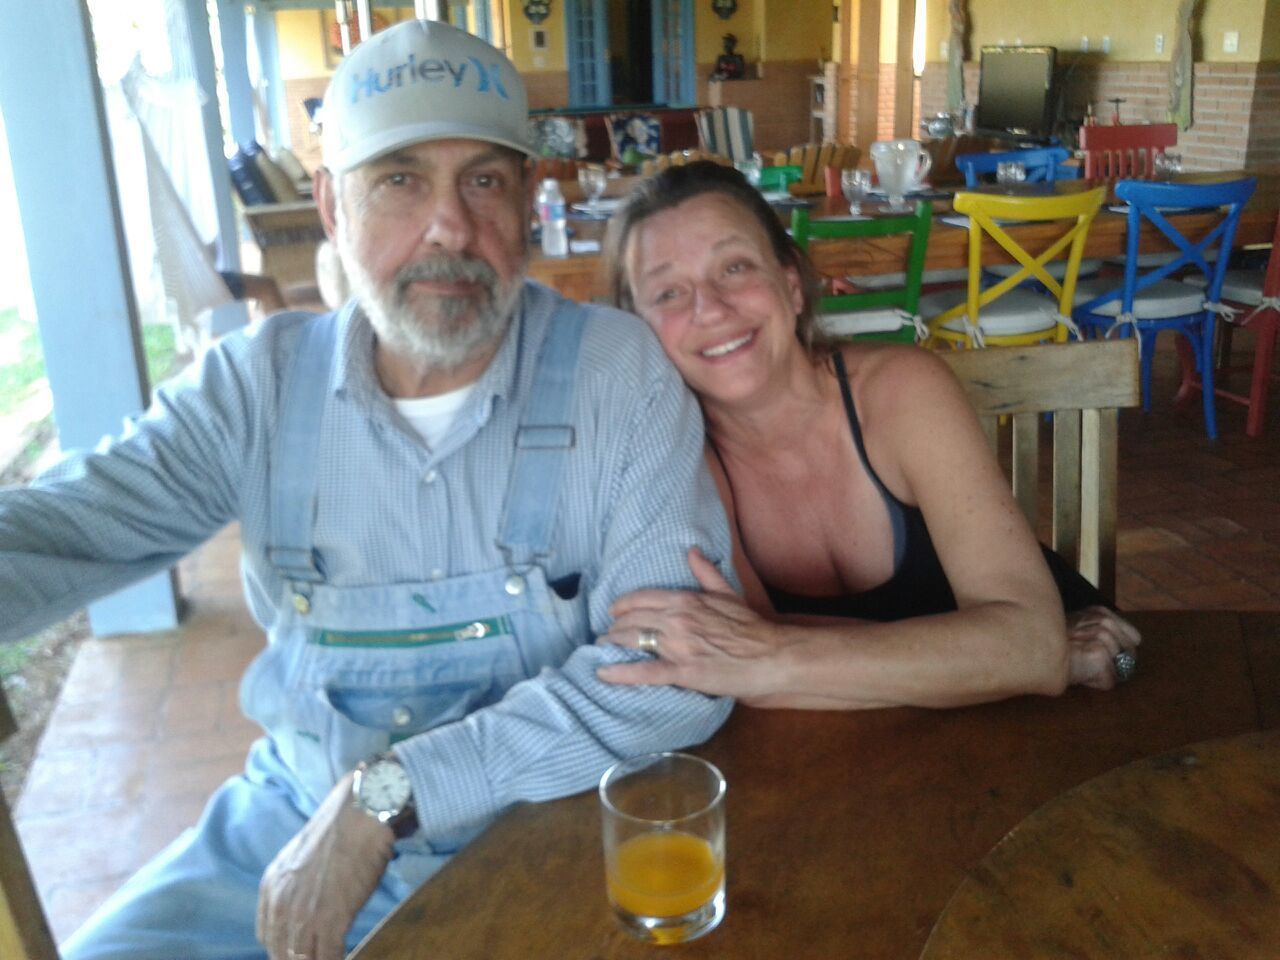 two people, senior adult, table, alcohol, drinking glass, drink, senior men, food and drink, refreshment, togetherness, sitting, men, indoors, day, portrait, happiness, smiling, bonding, friendship, adults only, adult, people